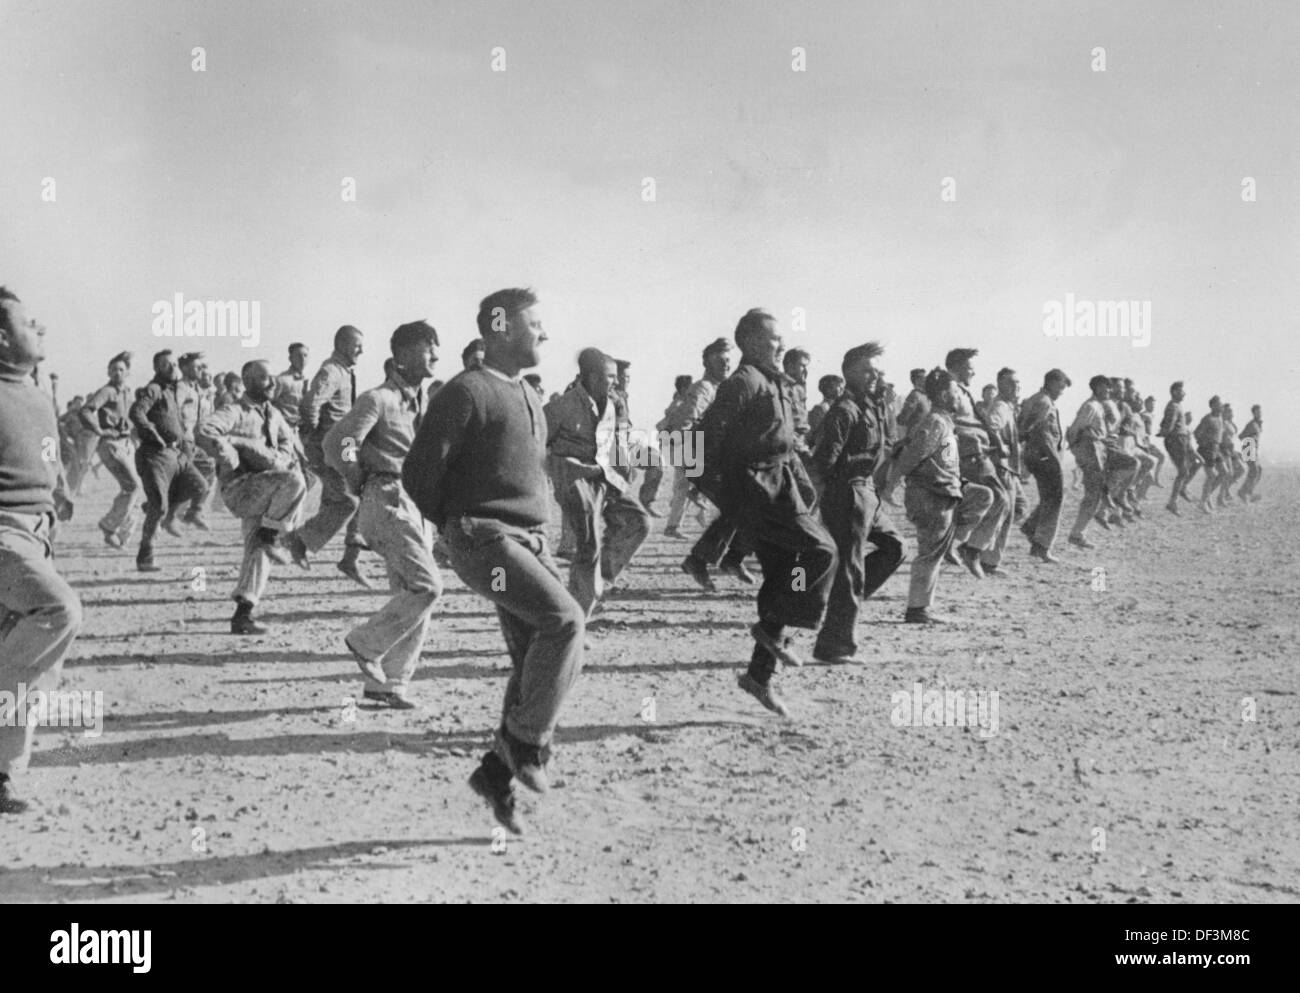 The image from the Nazi Propaganda! depicts soldiers of the German Wehrmacht doing sports in the morning in Africa, published on 5 April 1941. Place unknown. Photo: Berliner Verlag/Archiv - Stock Image